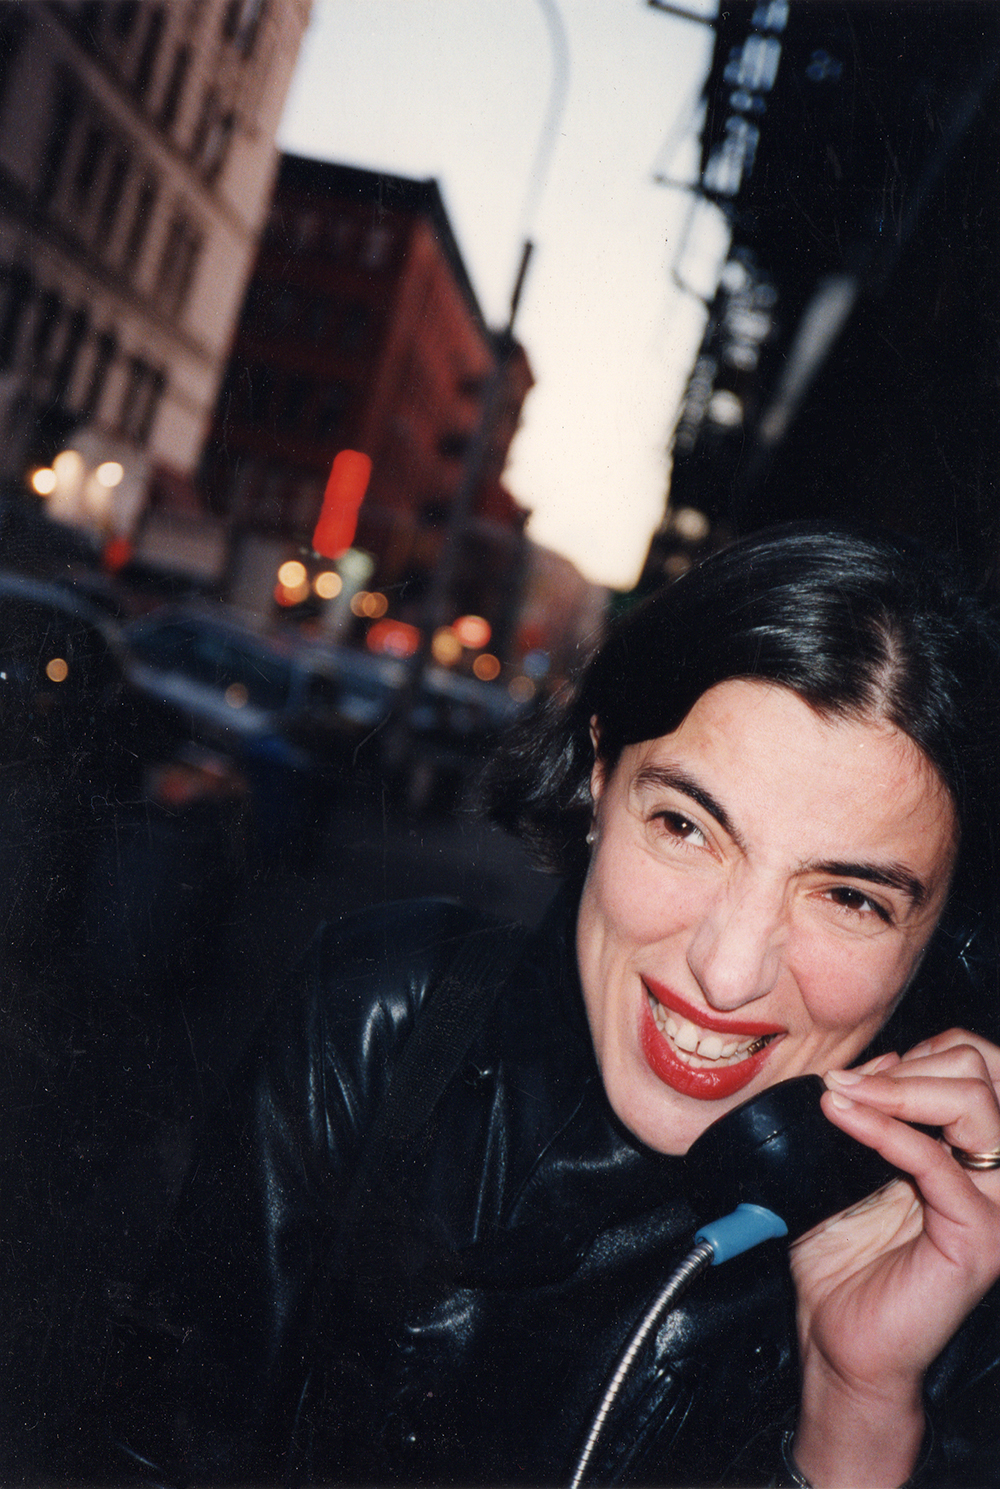 Valerie Trucchia in the streets of New York, 1995